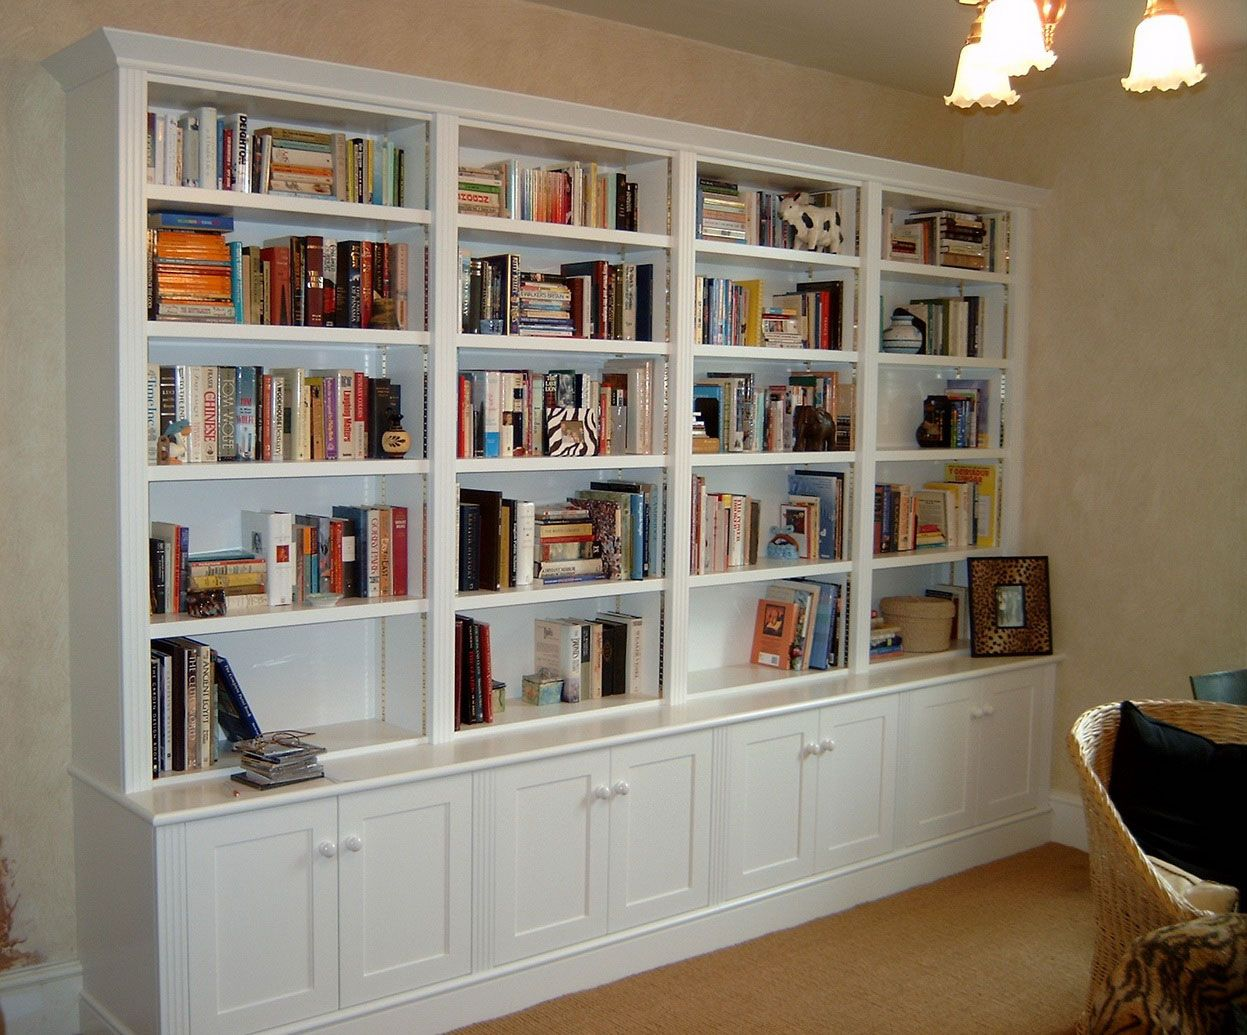 Designing Home Library Ventasalud Com Home Library Design Small Home Libraries Bookcase Plans